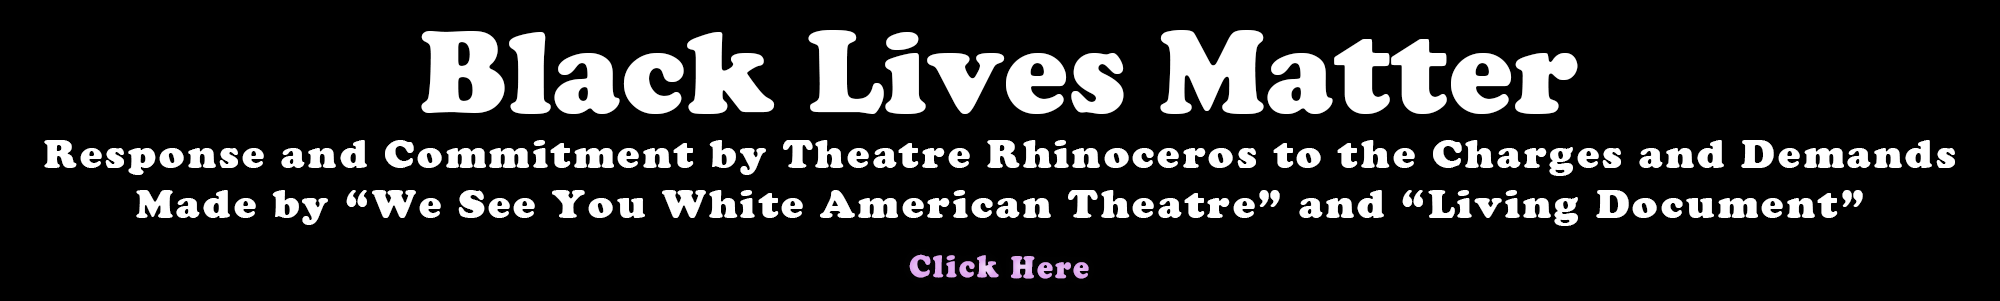 Black Lives Matter - An invitation to click and see Theatre Rhinoceros' Statement